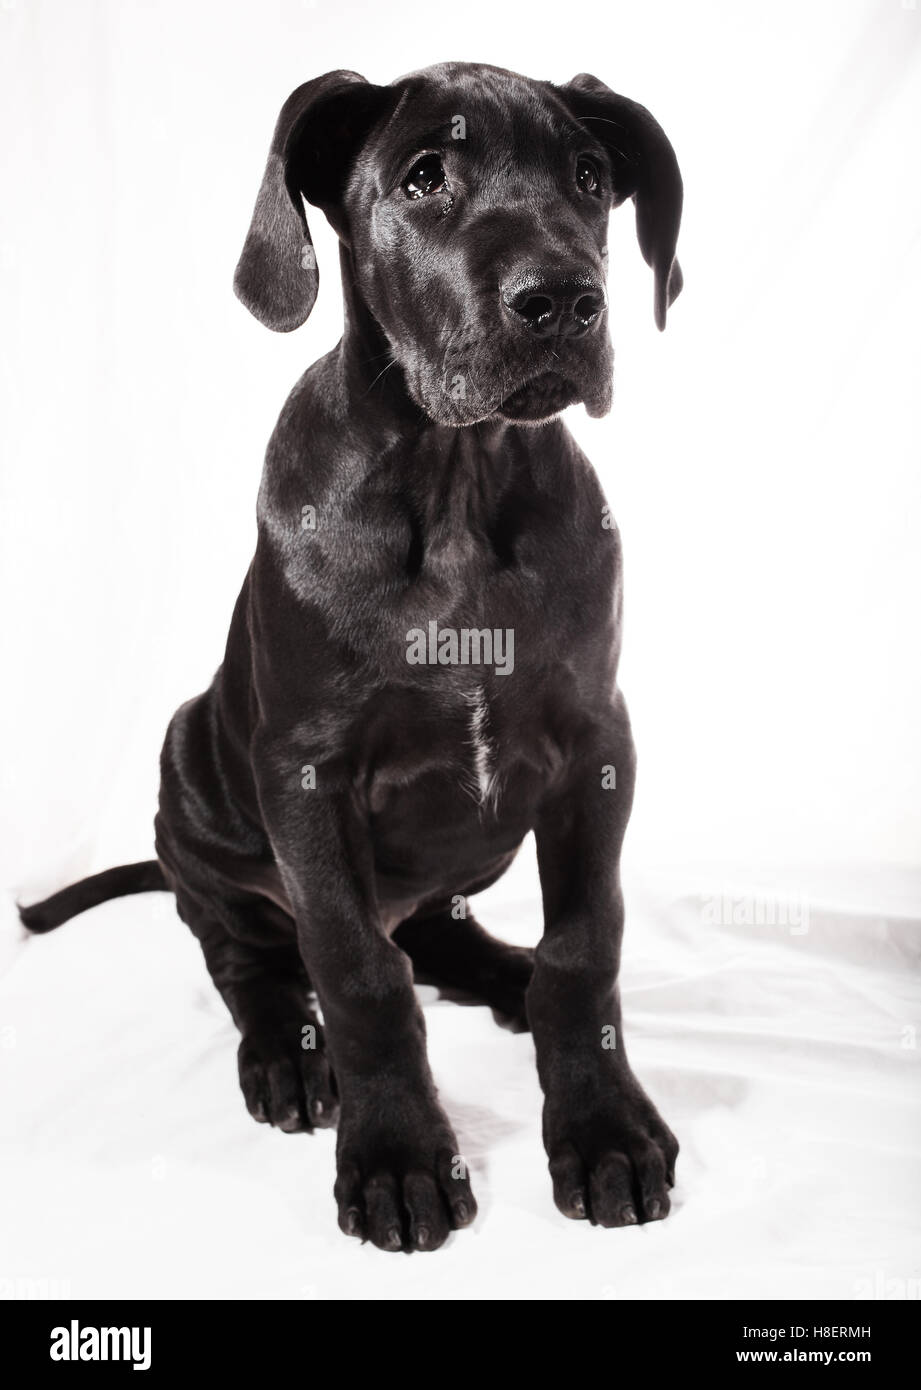 Black Great Dane Puppy Sitting High Resolution Stock Photography And Images Alamy